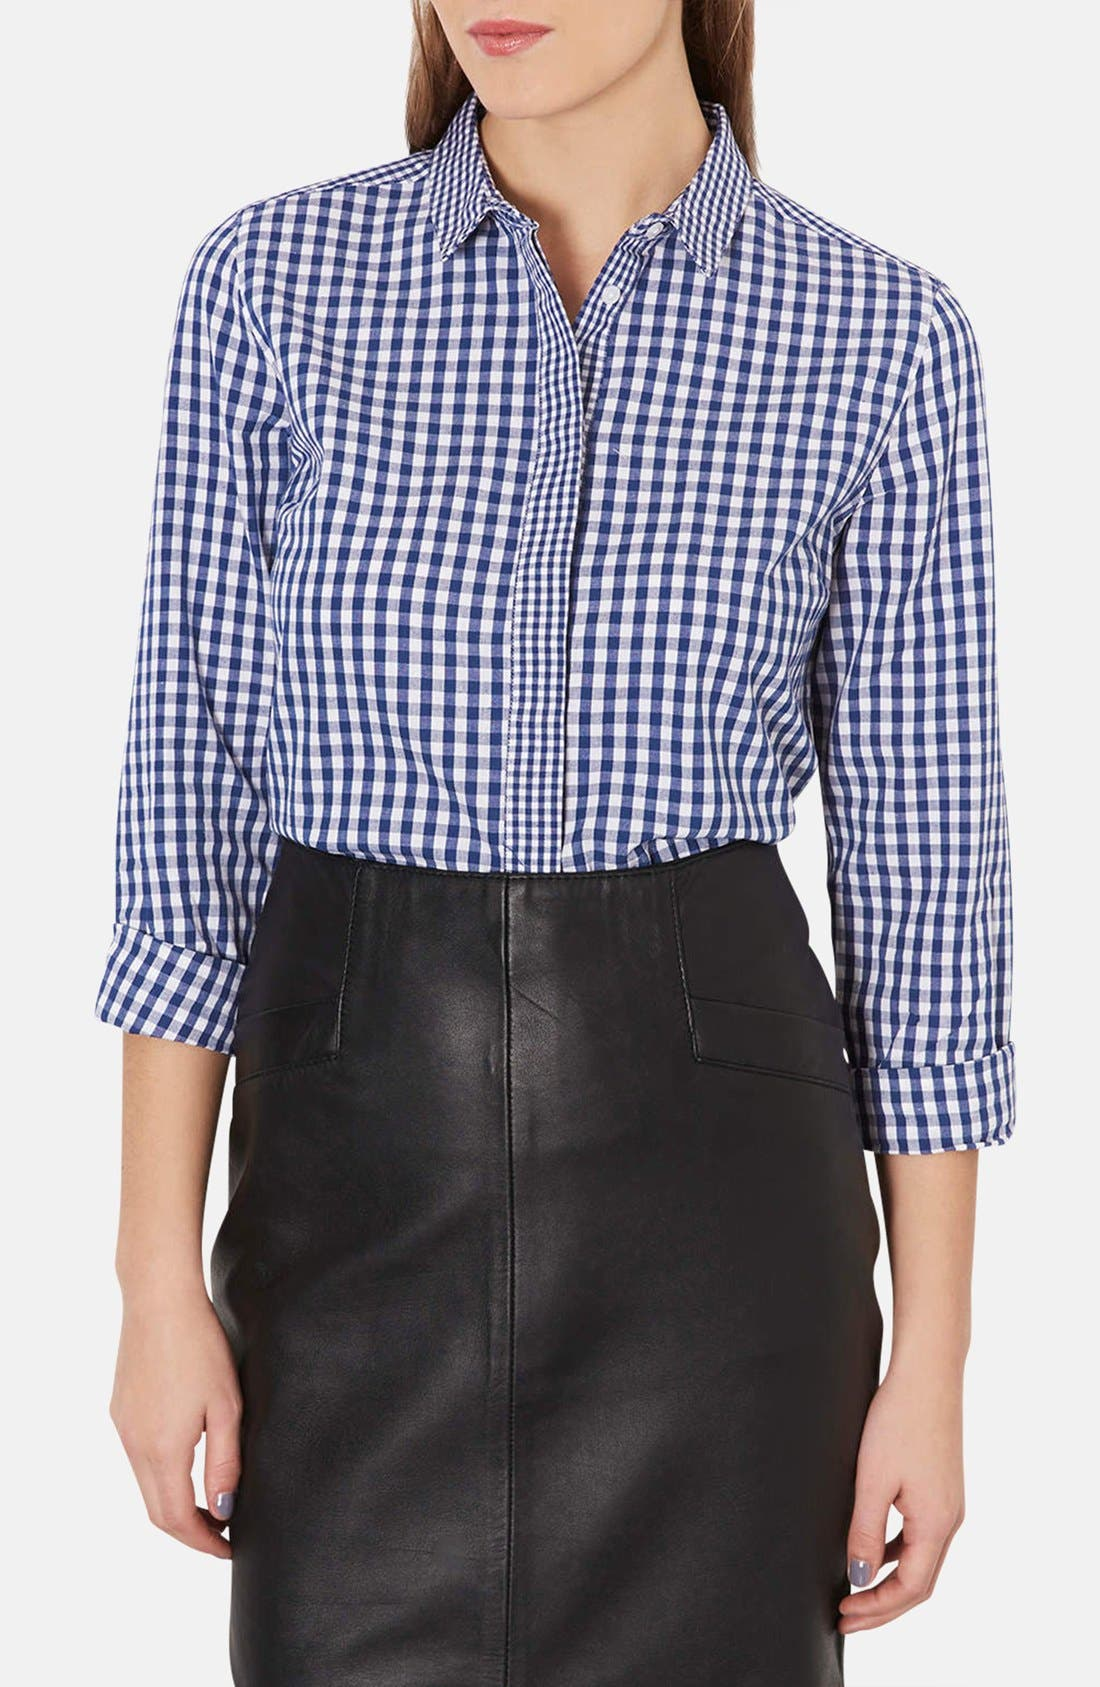 Alternate Image 1 Selected - Topshop Mix Gingham Print Cotton Shirt